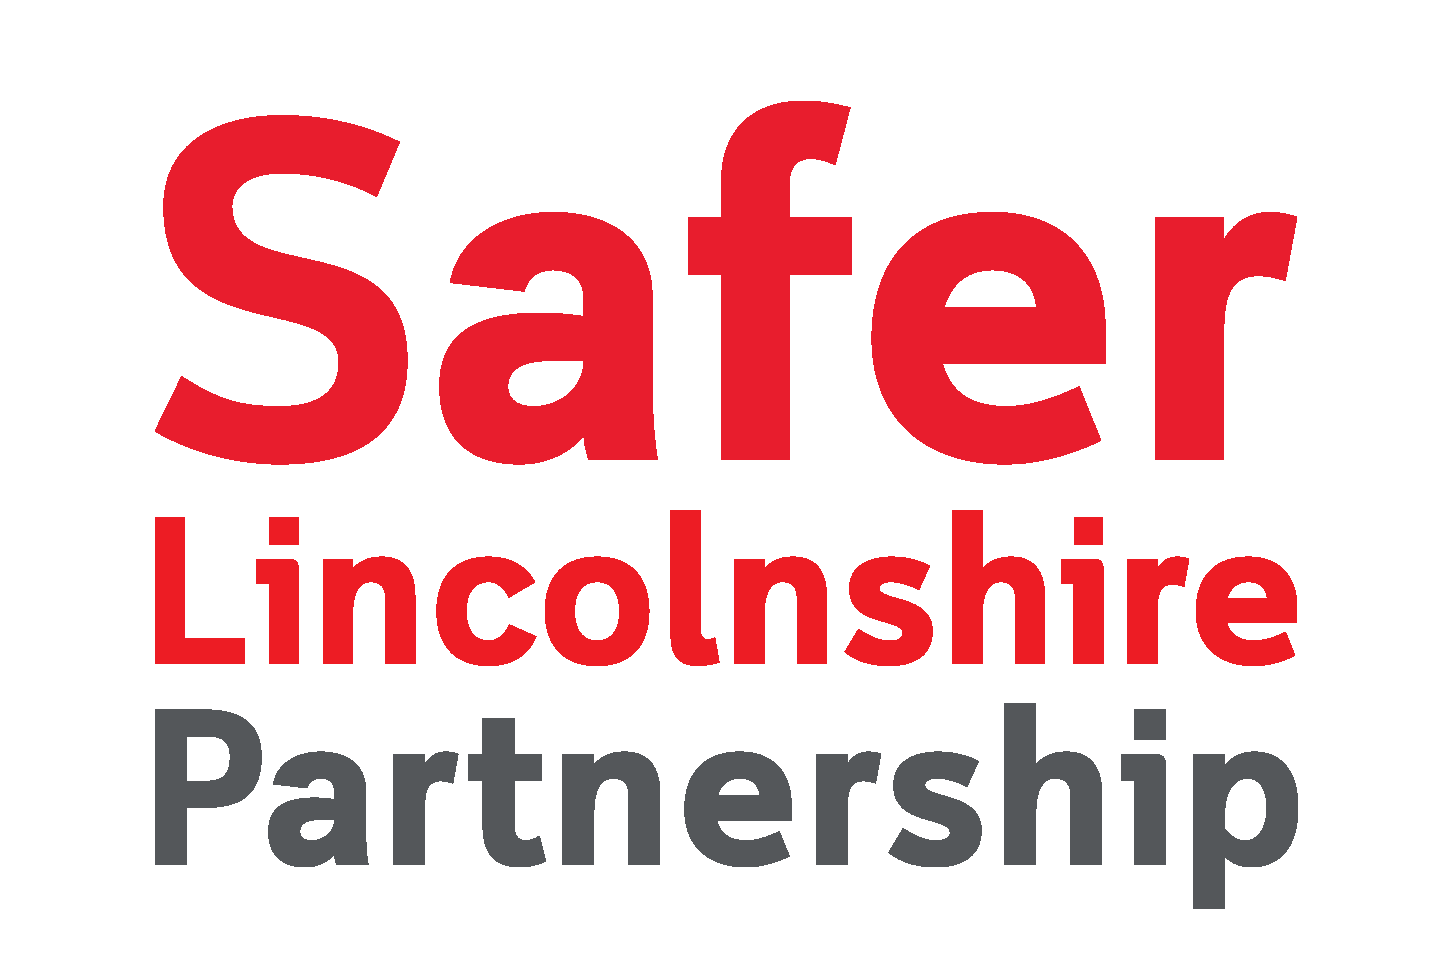 Safer lincolnshire partnership logo